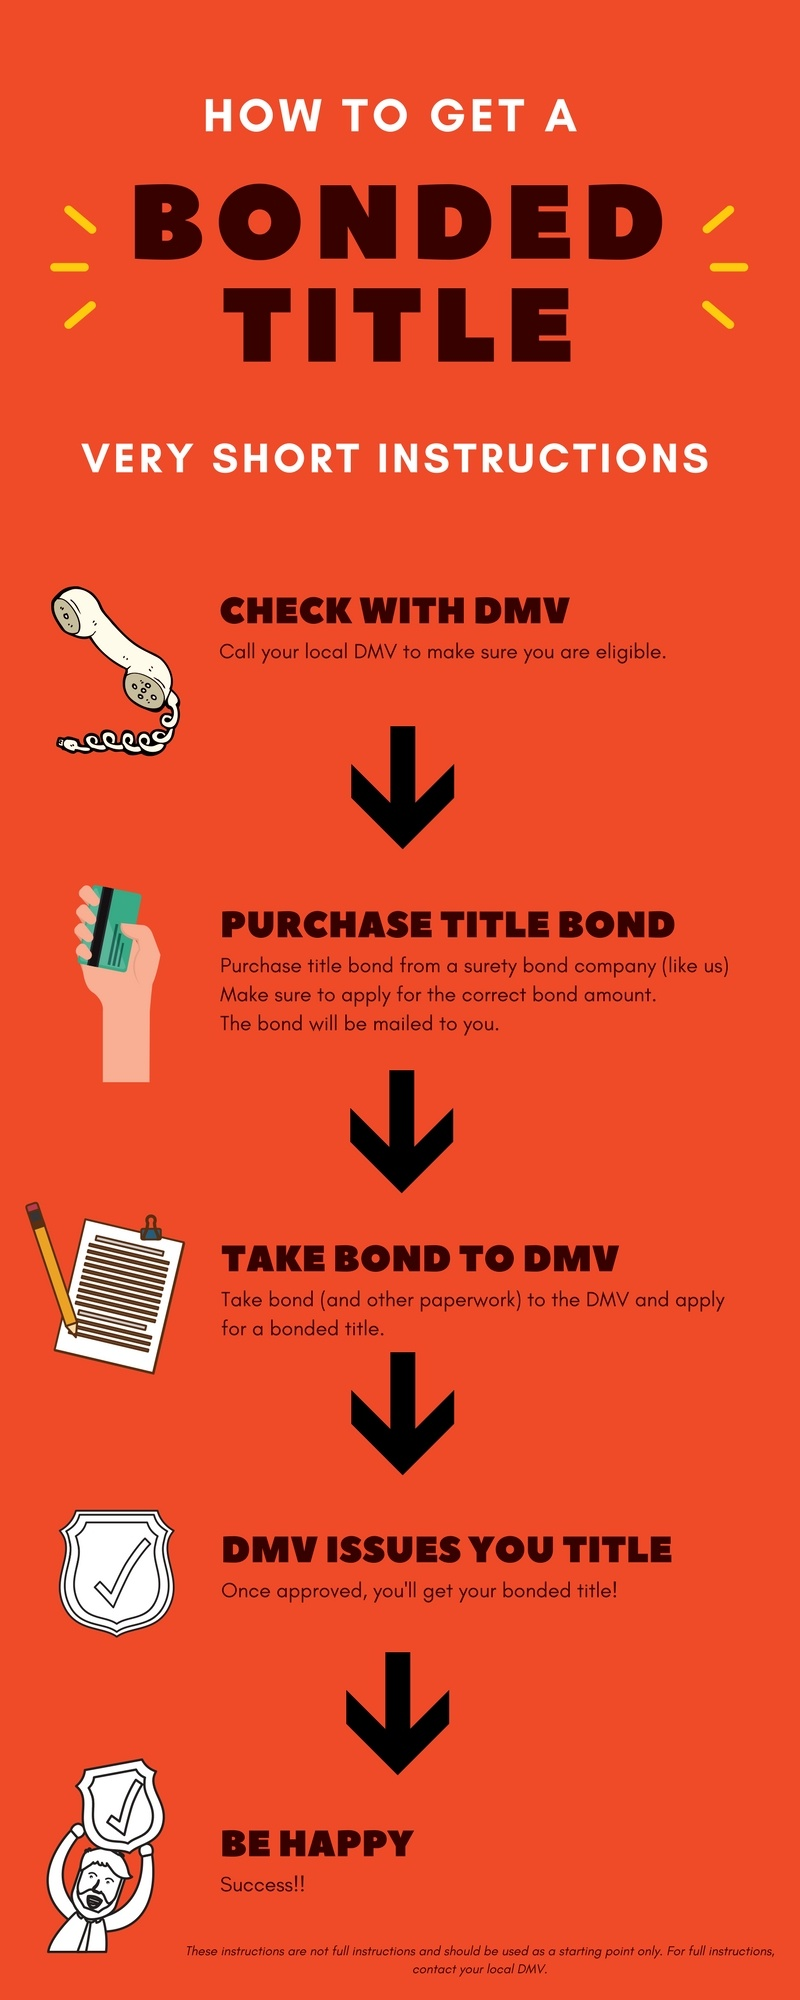 How to get a missouri bonded title for Motor vehicle surety bond